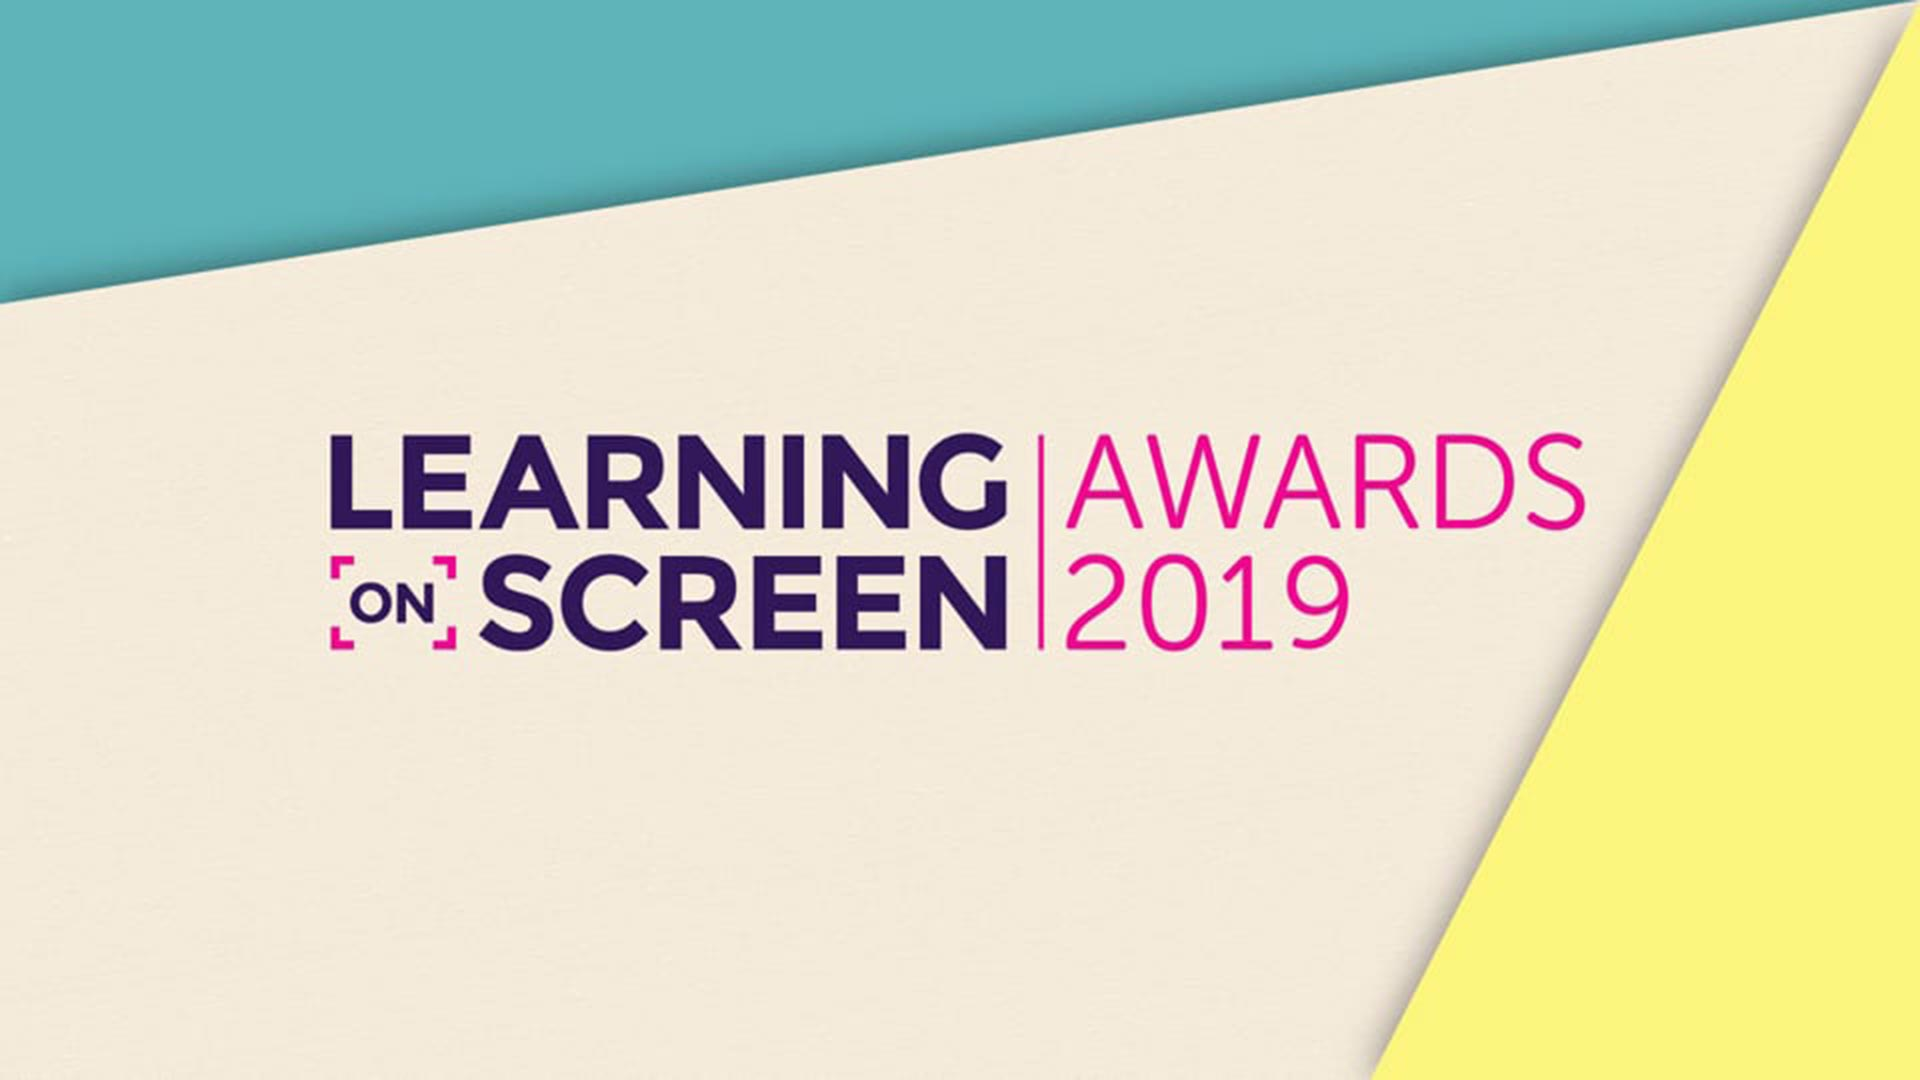 Learning on Screen Awards 2019